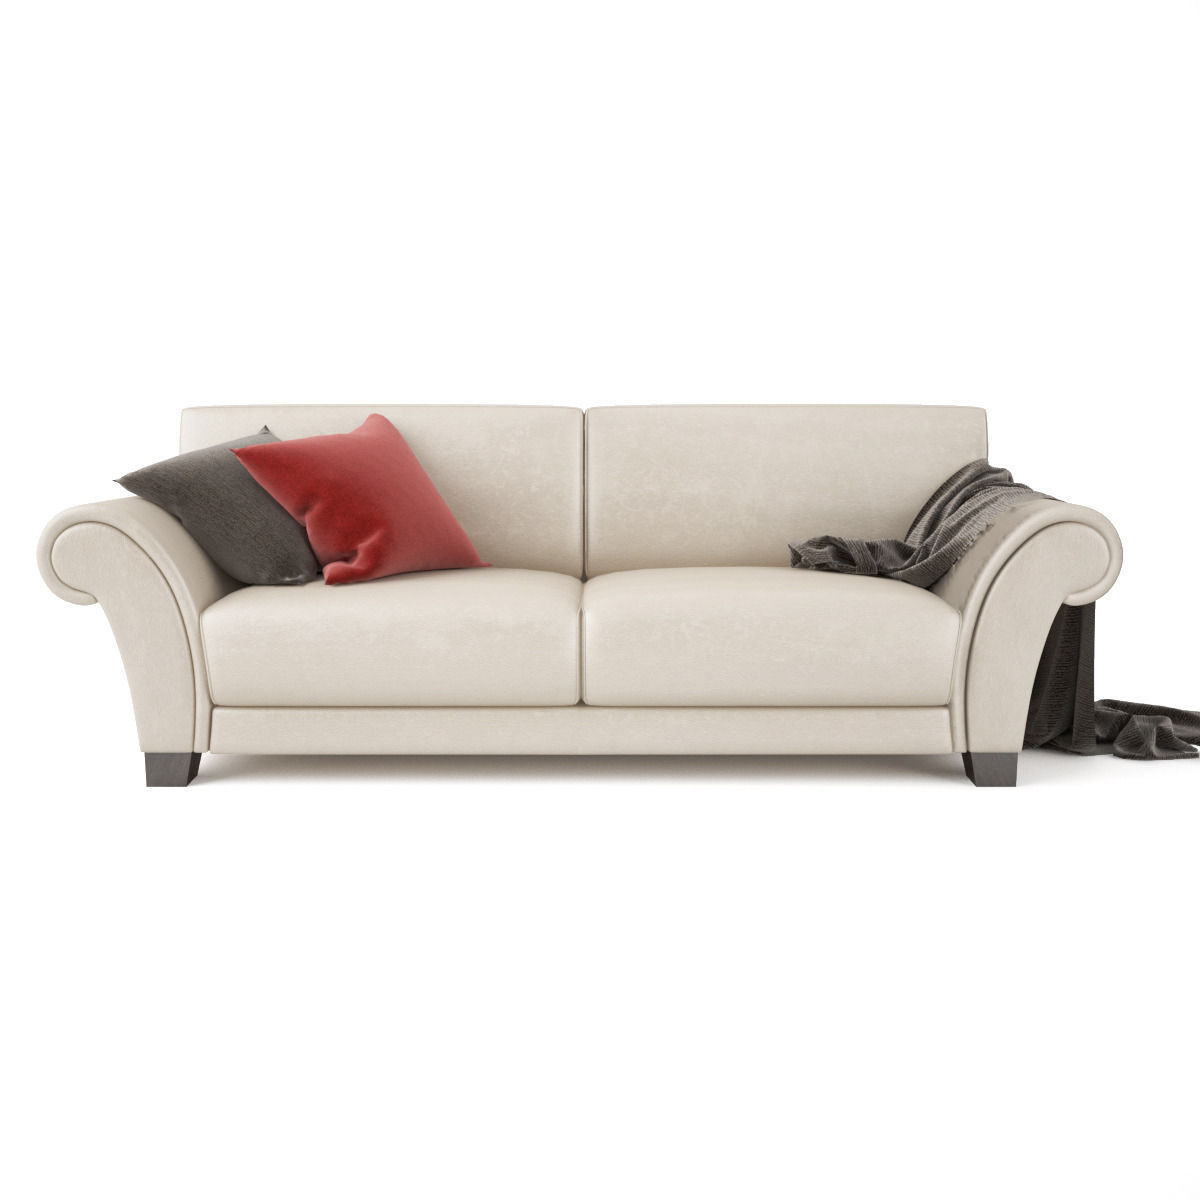 Sofa loveseat 3d model max obj fbx for 3 on a couch